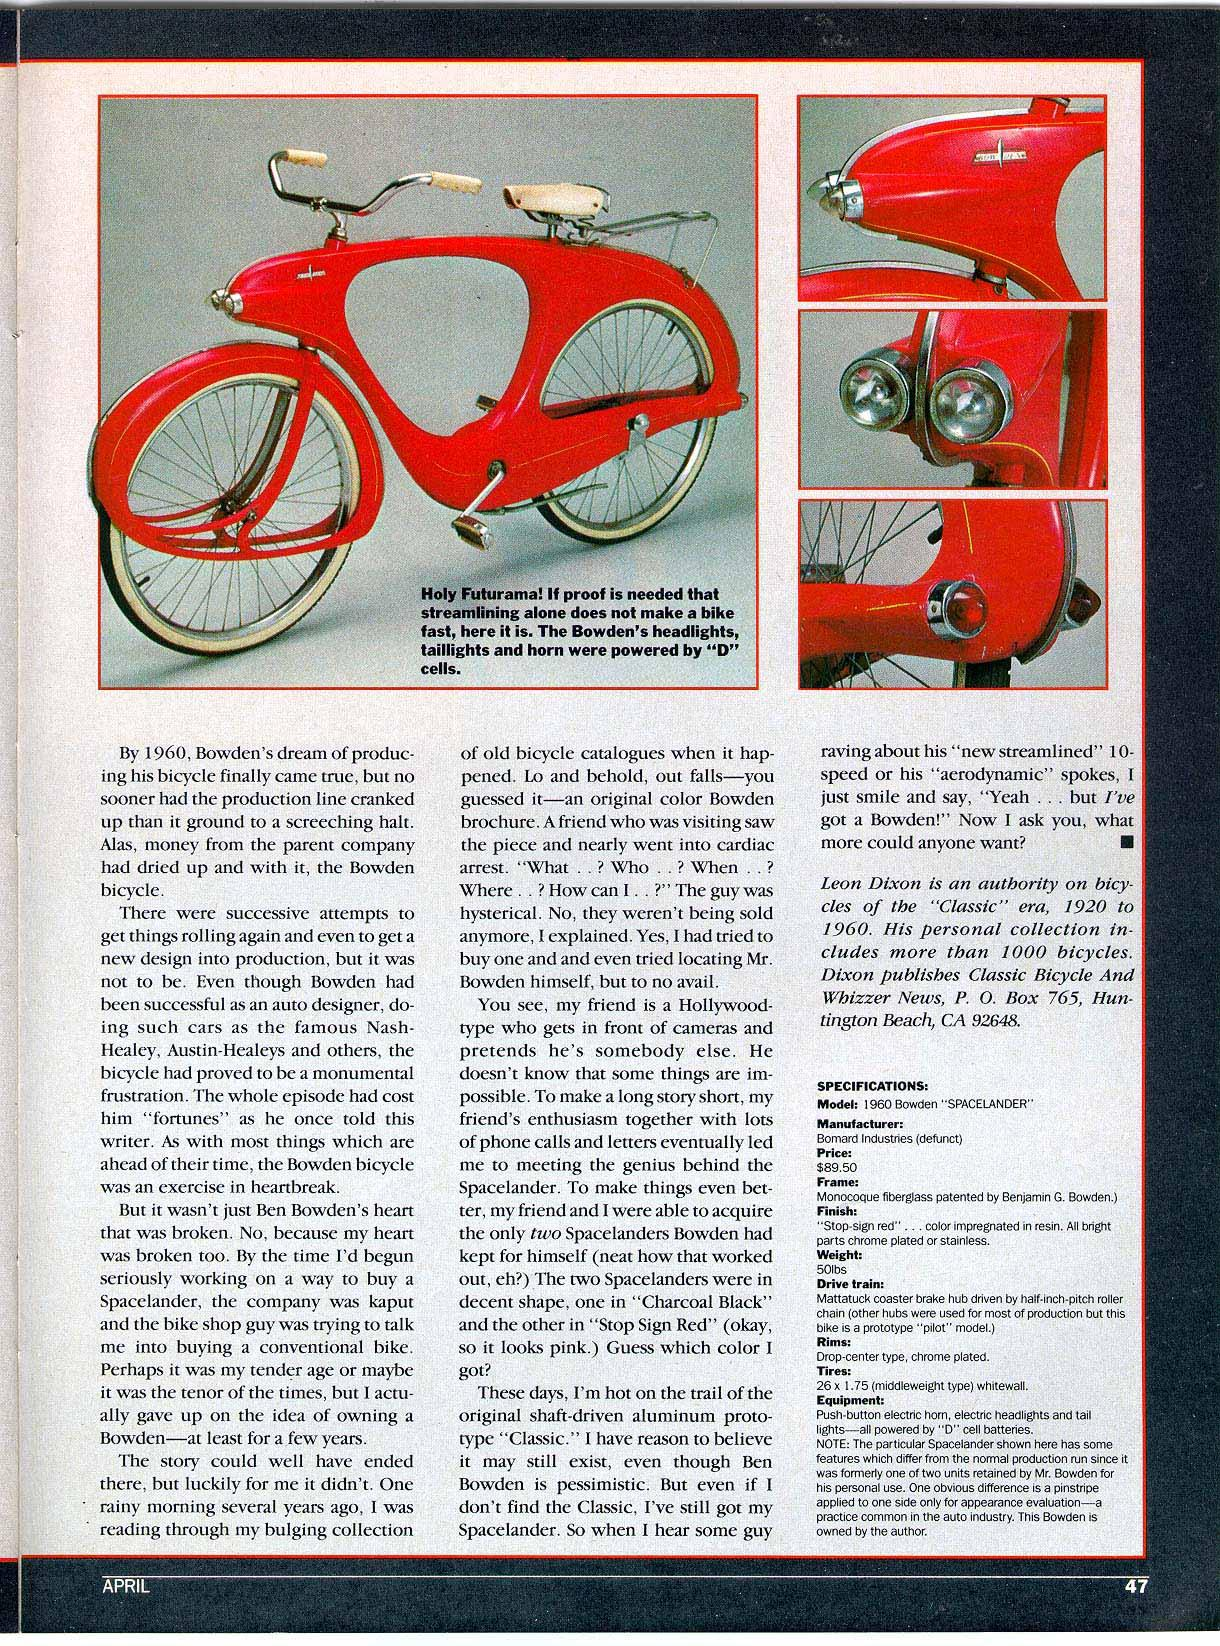 Nbhaa National Bicycle History Archive Of America